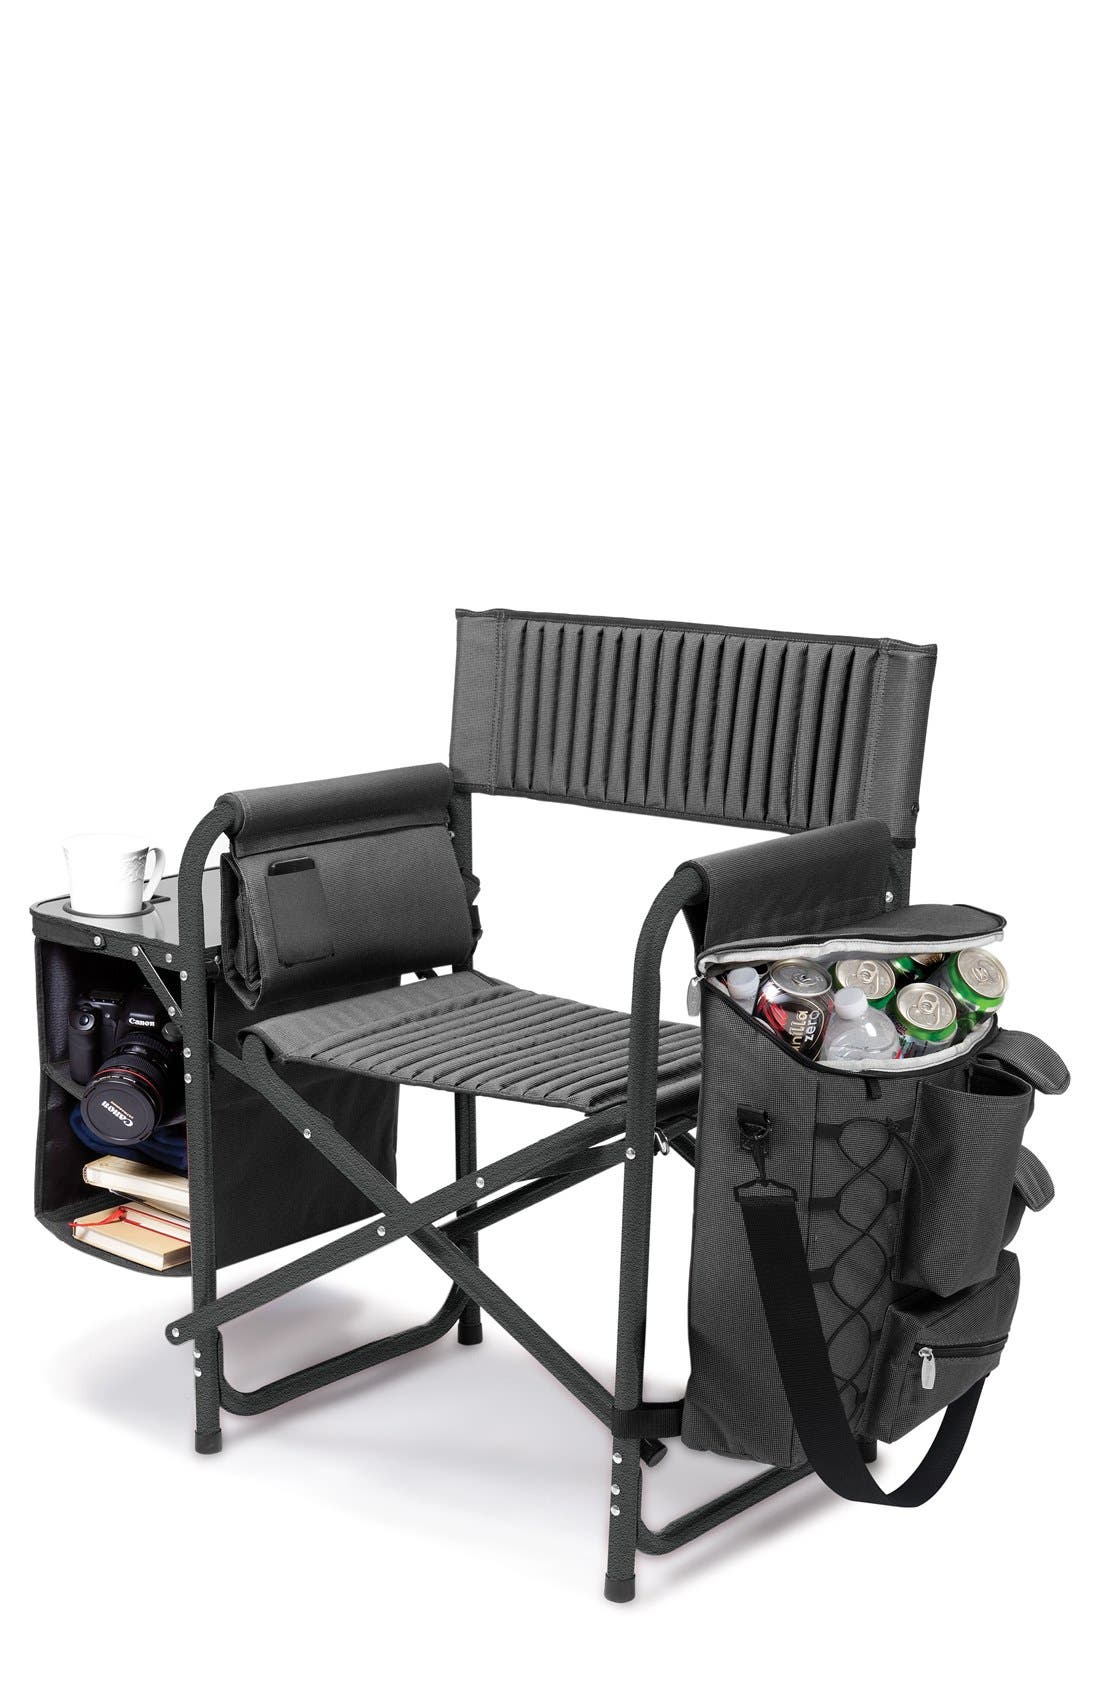 Main Image - Picnic Time 'Fusion' Lawn Chair